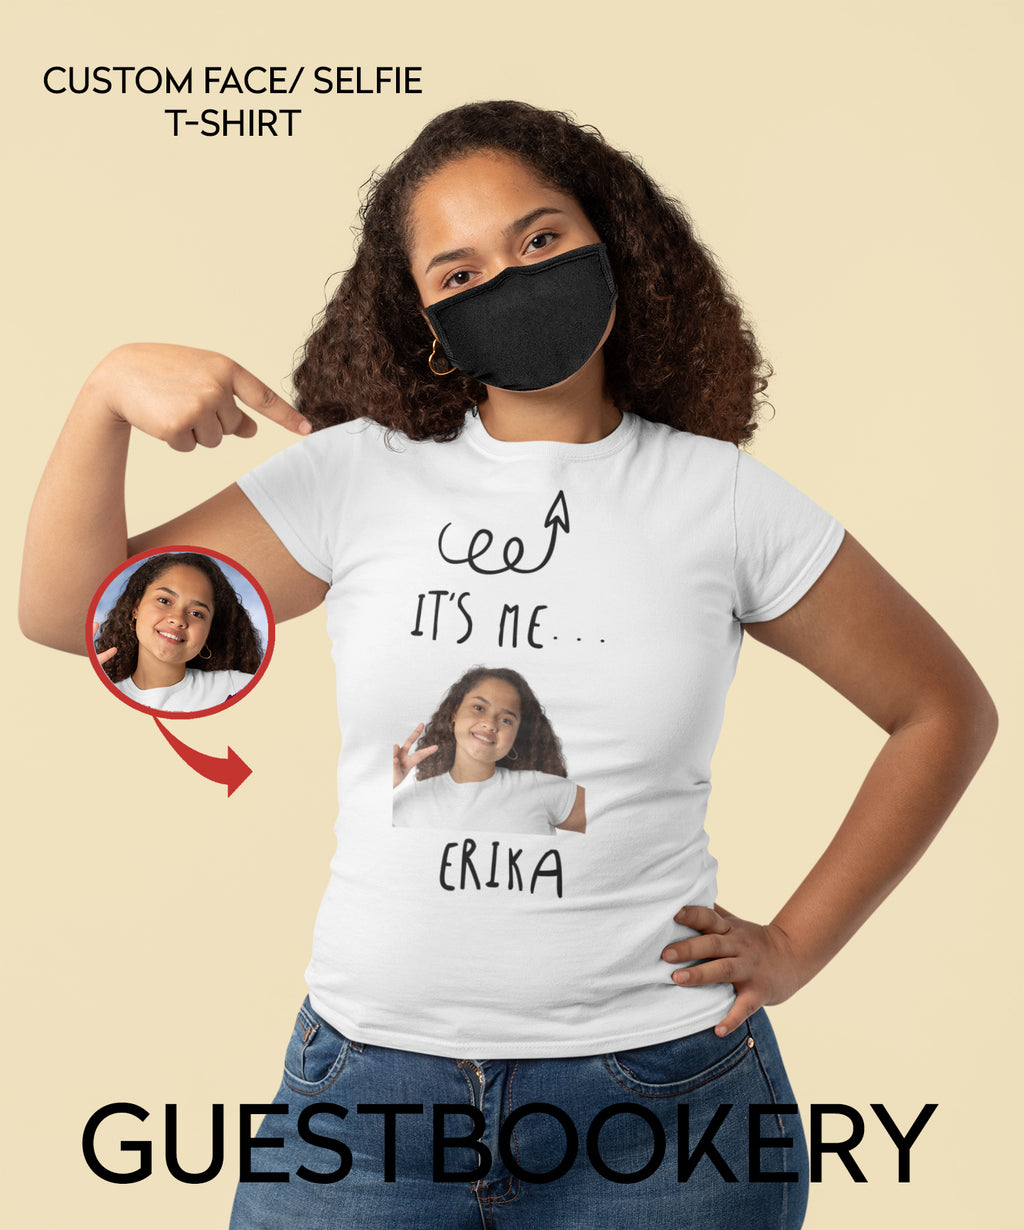 It's Me - Custom Face Mask T-shirt - Guestbookery